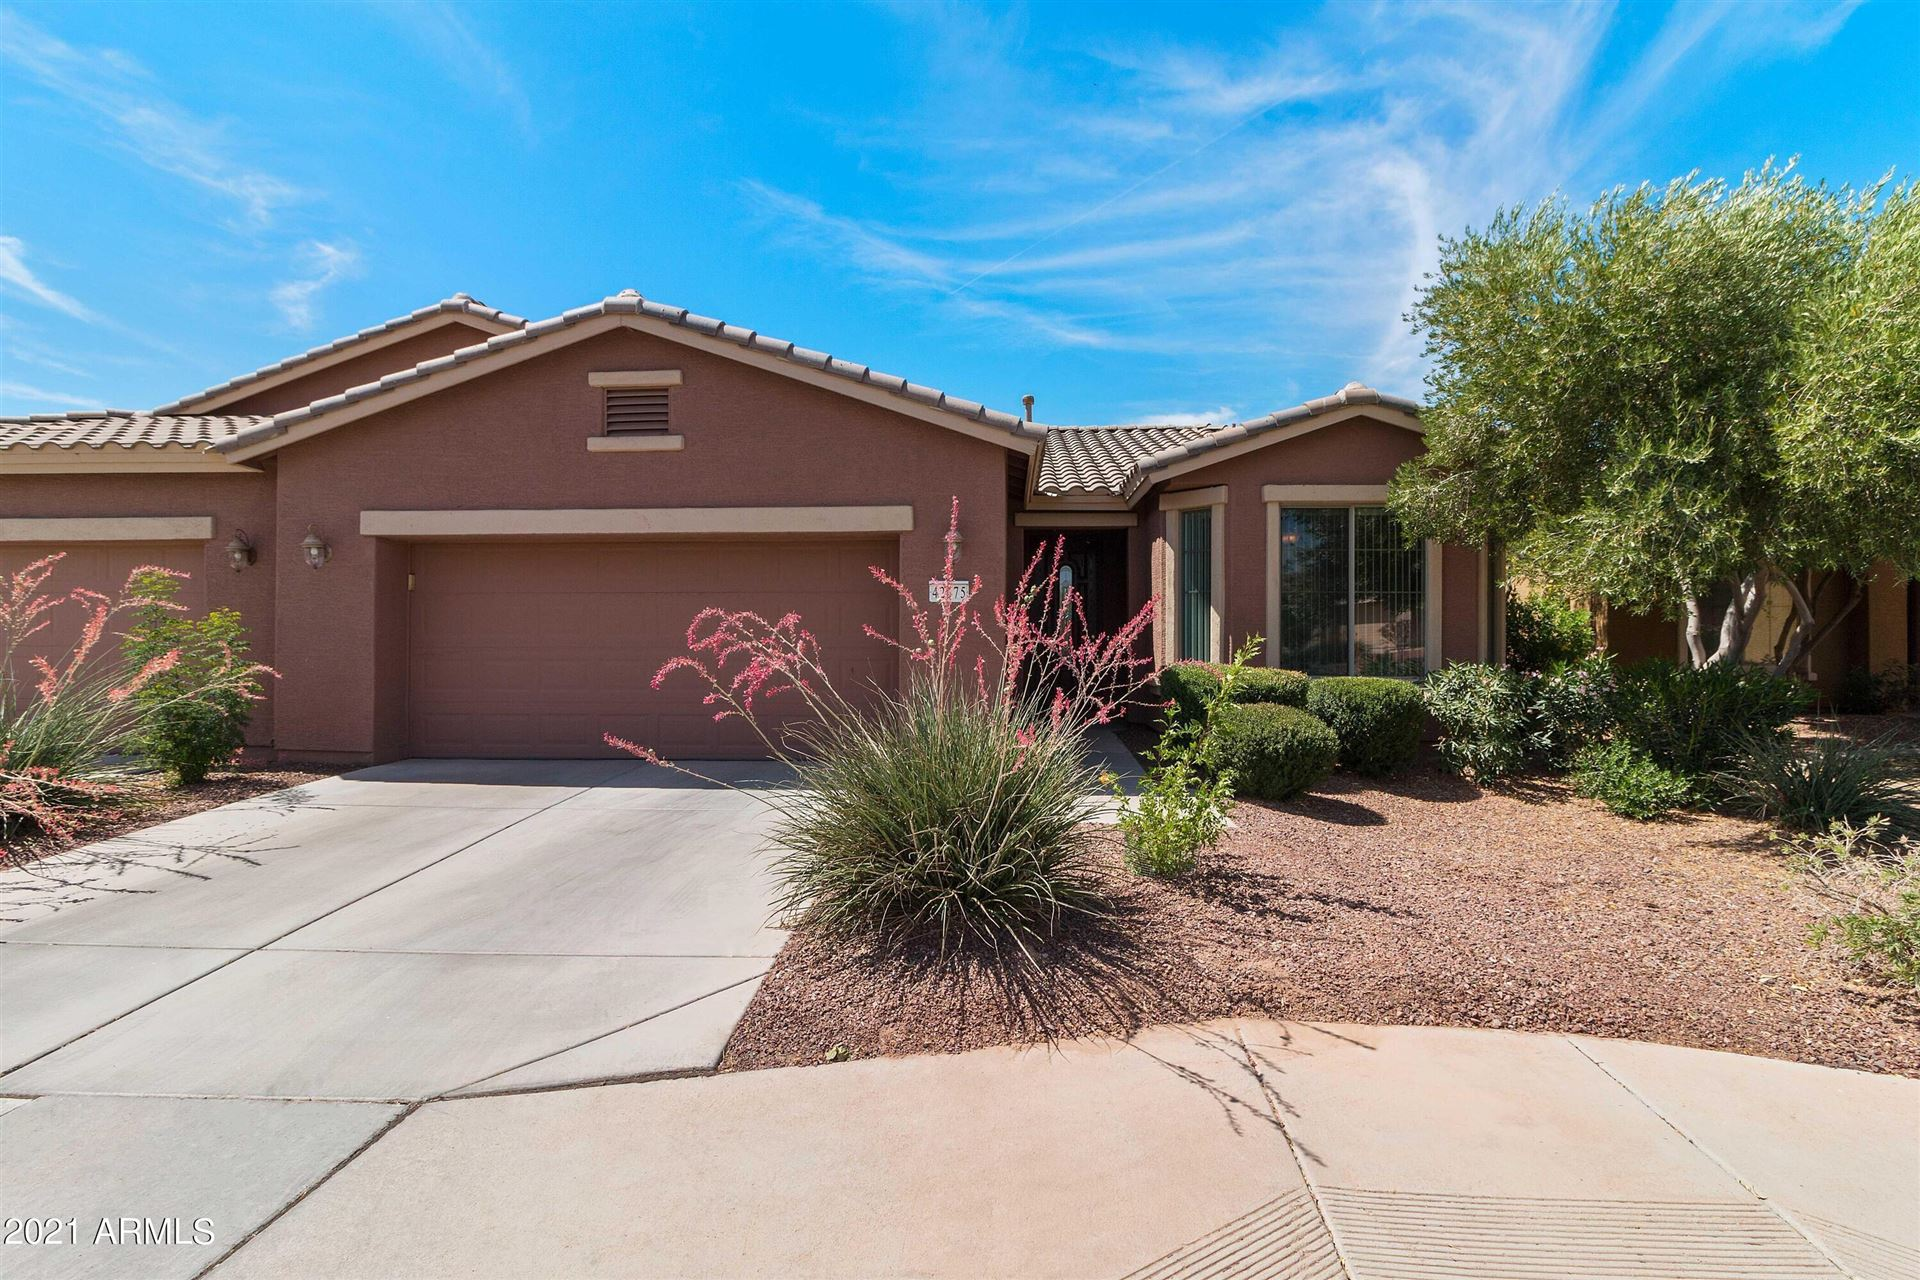 Photo for 42575 W CANDYLAND Place, Maricopa, AZ 85138 (MLS # 6250163)